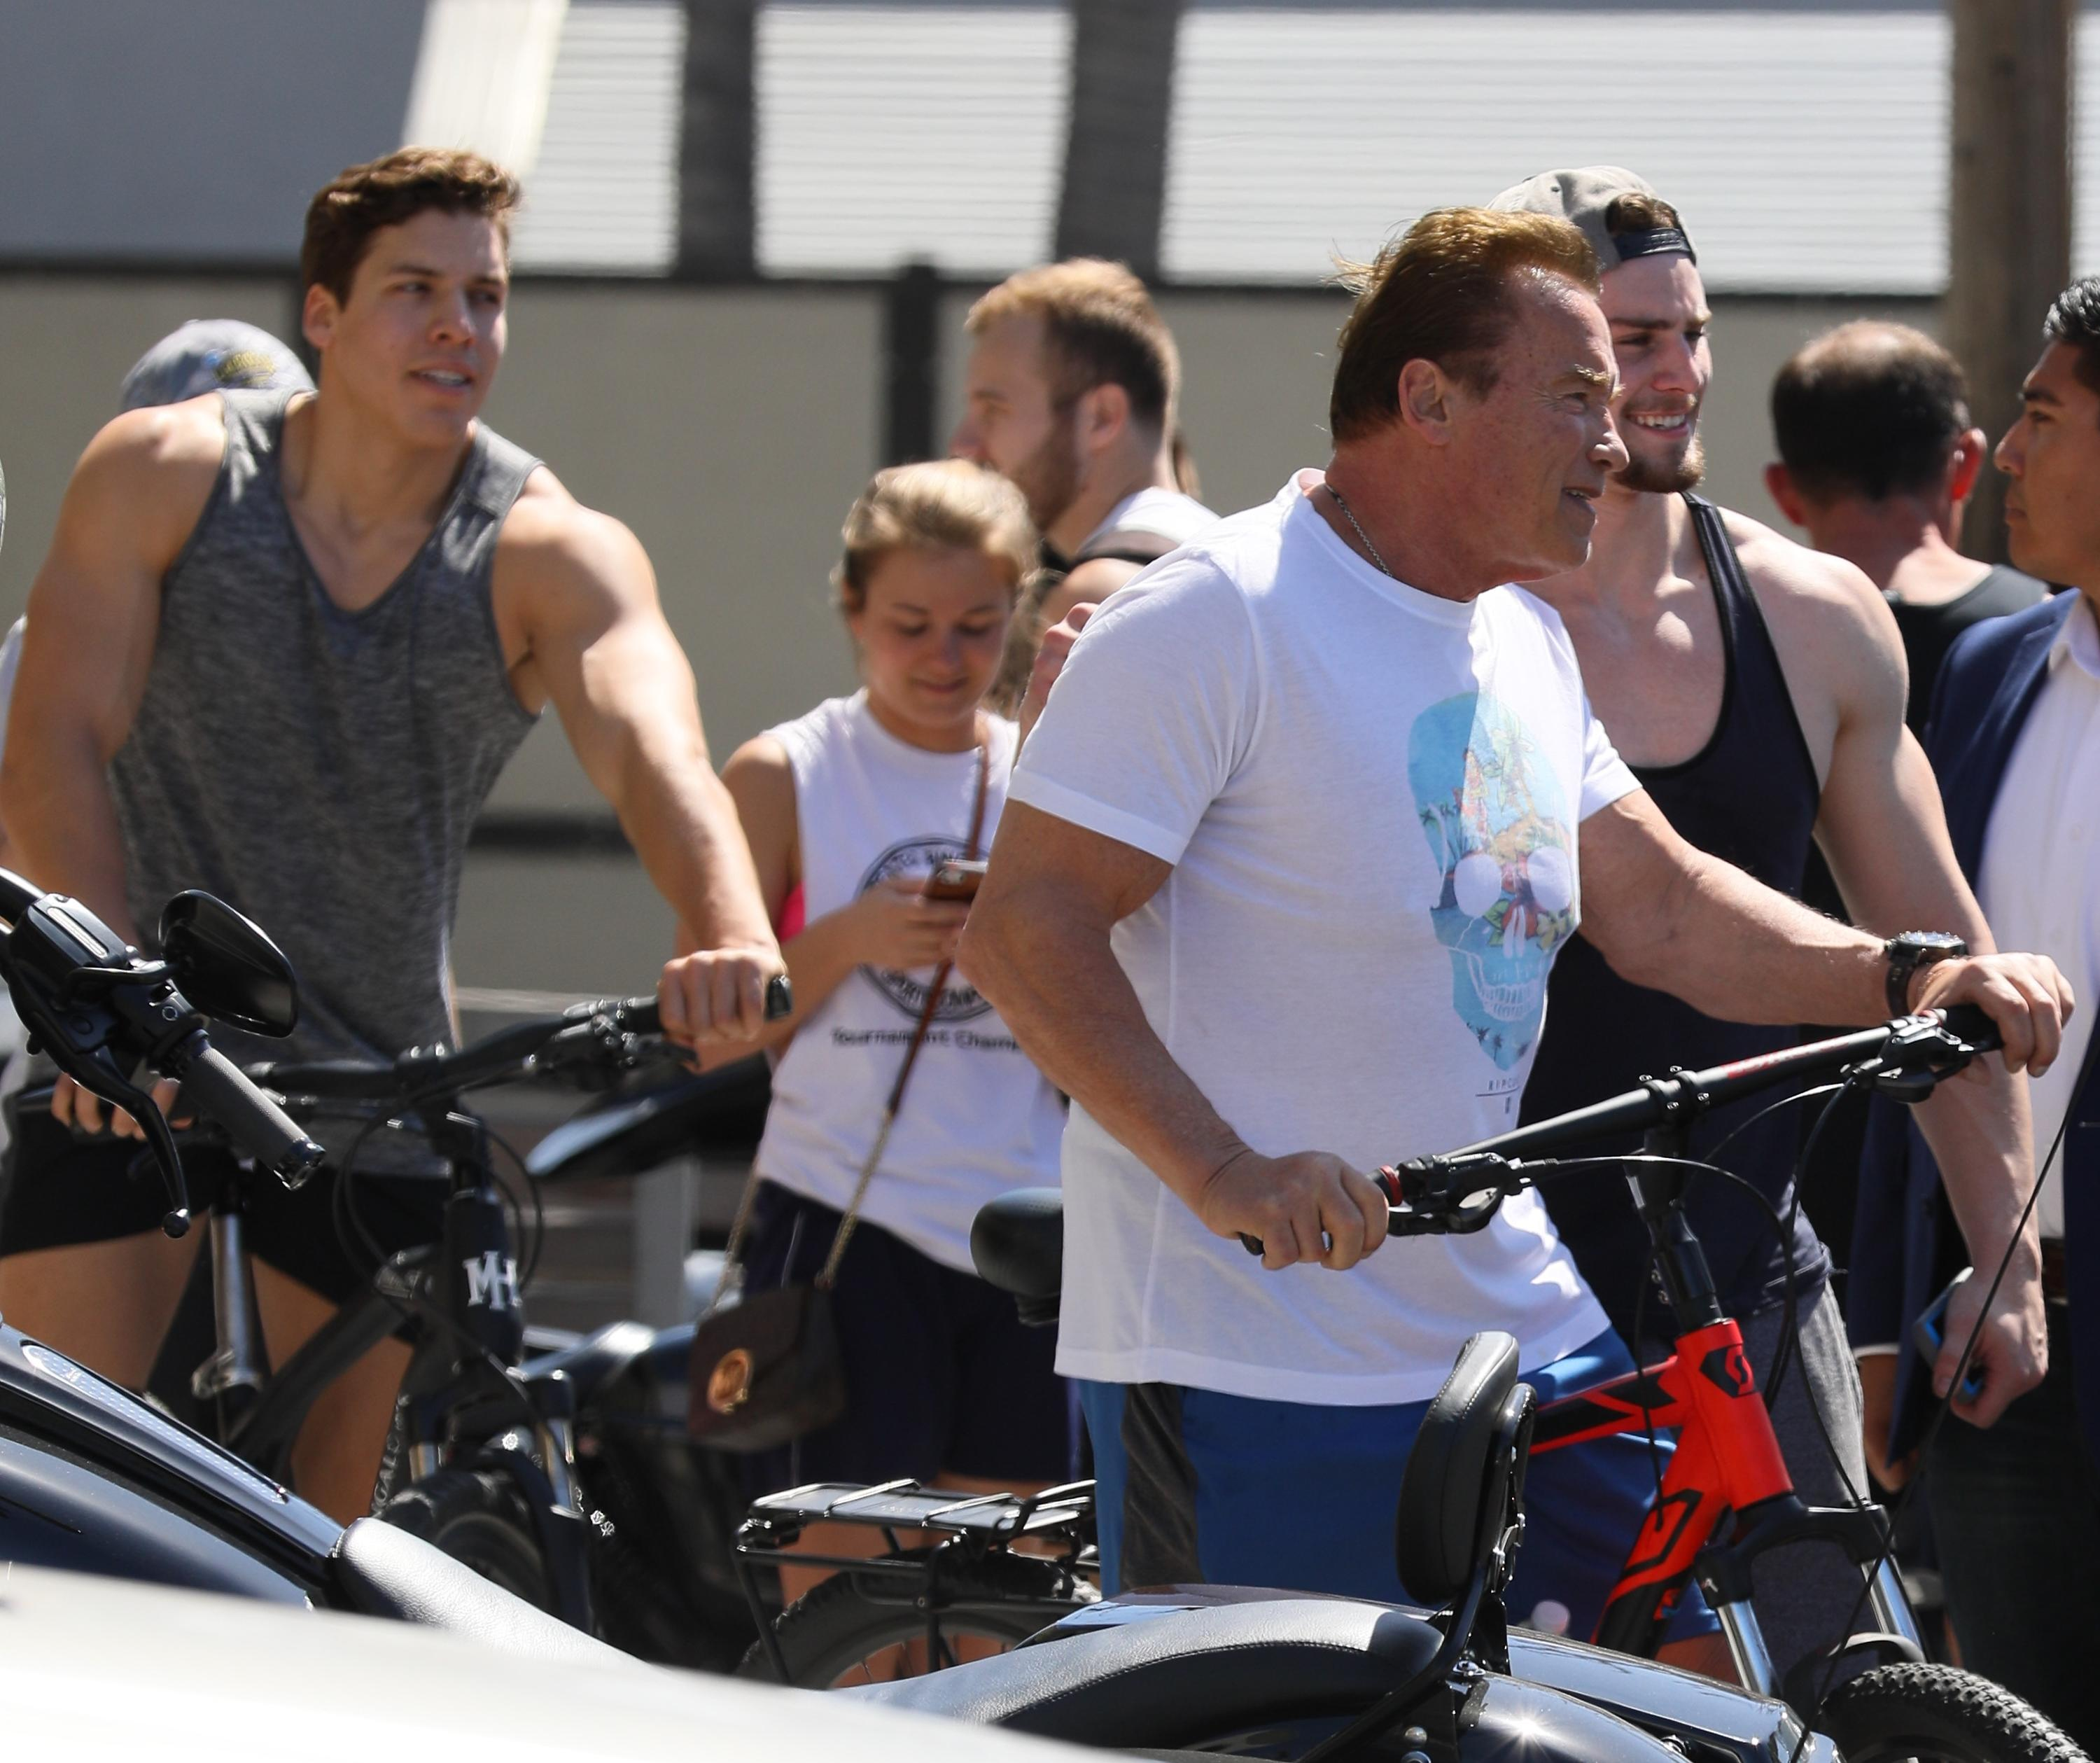 Arnold Schwarzenegger latest pictures - Home Facebook Arnold schwarzenegger latest photo